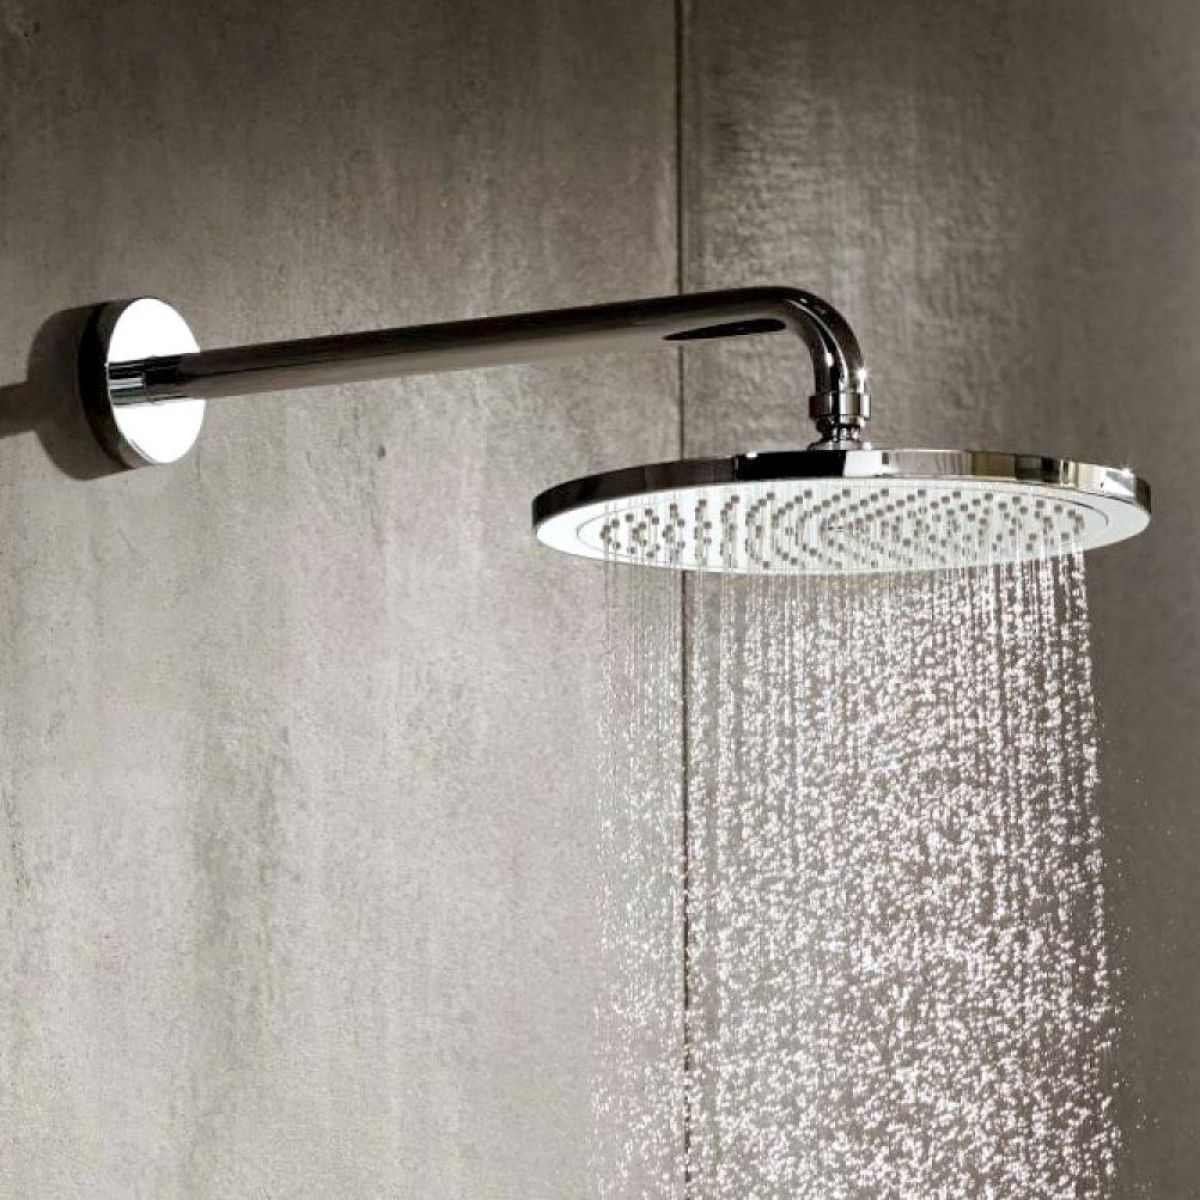 hansgrohe croma 280 air 1jet overhead shower uk bathrooms. Black Bedroom Furniture Sets. Home Design Ideas